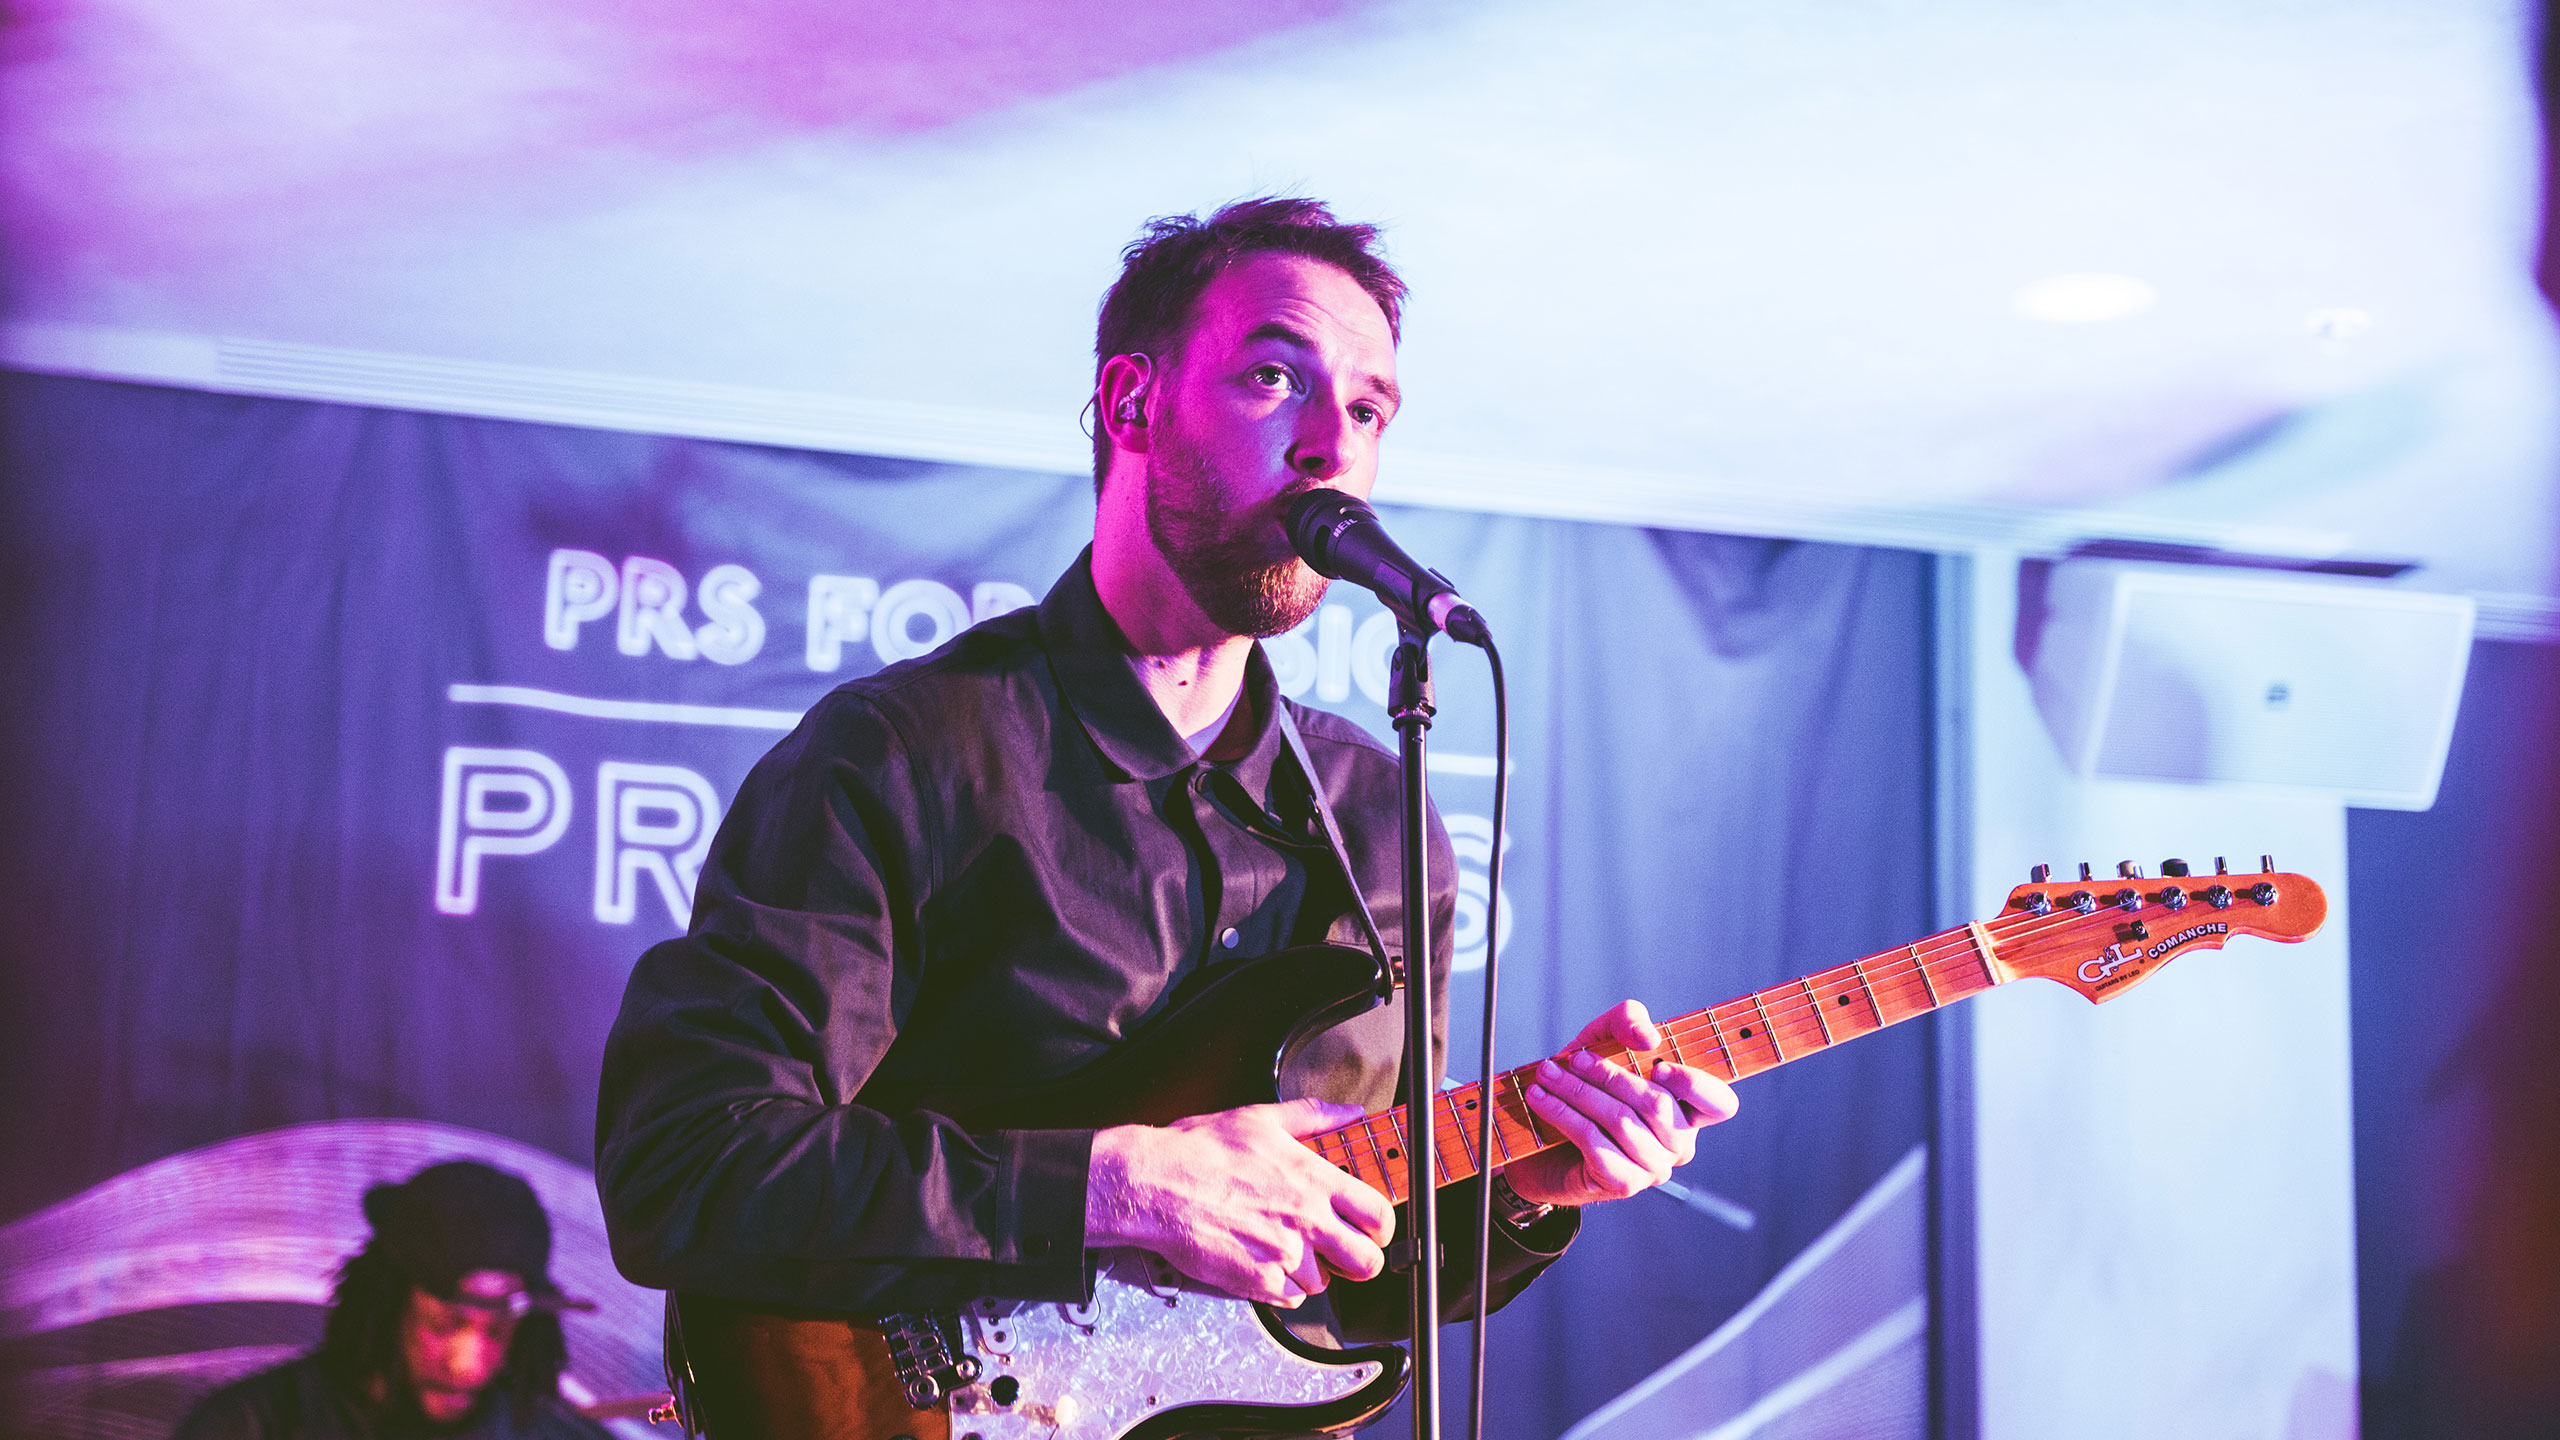 Honne's Andy Clutterbuck plays guitar and sings at PRS Presents, wearing a dark shirt